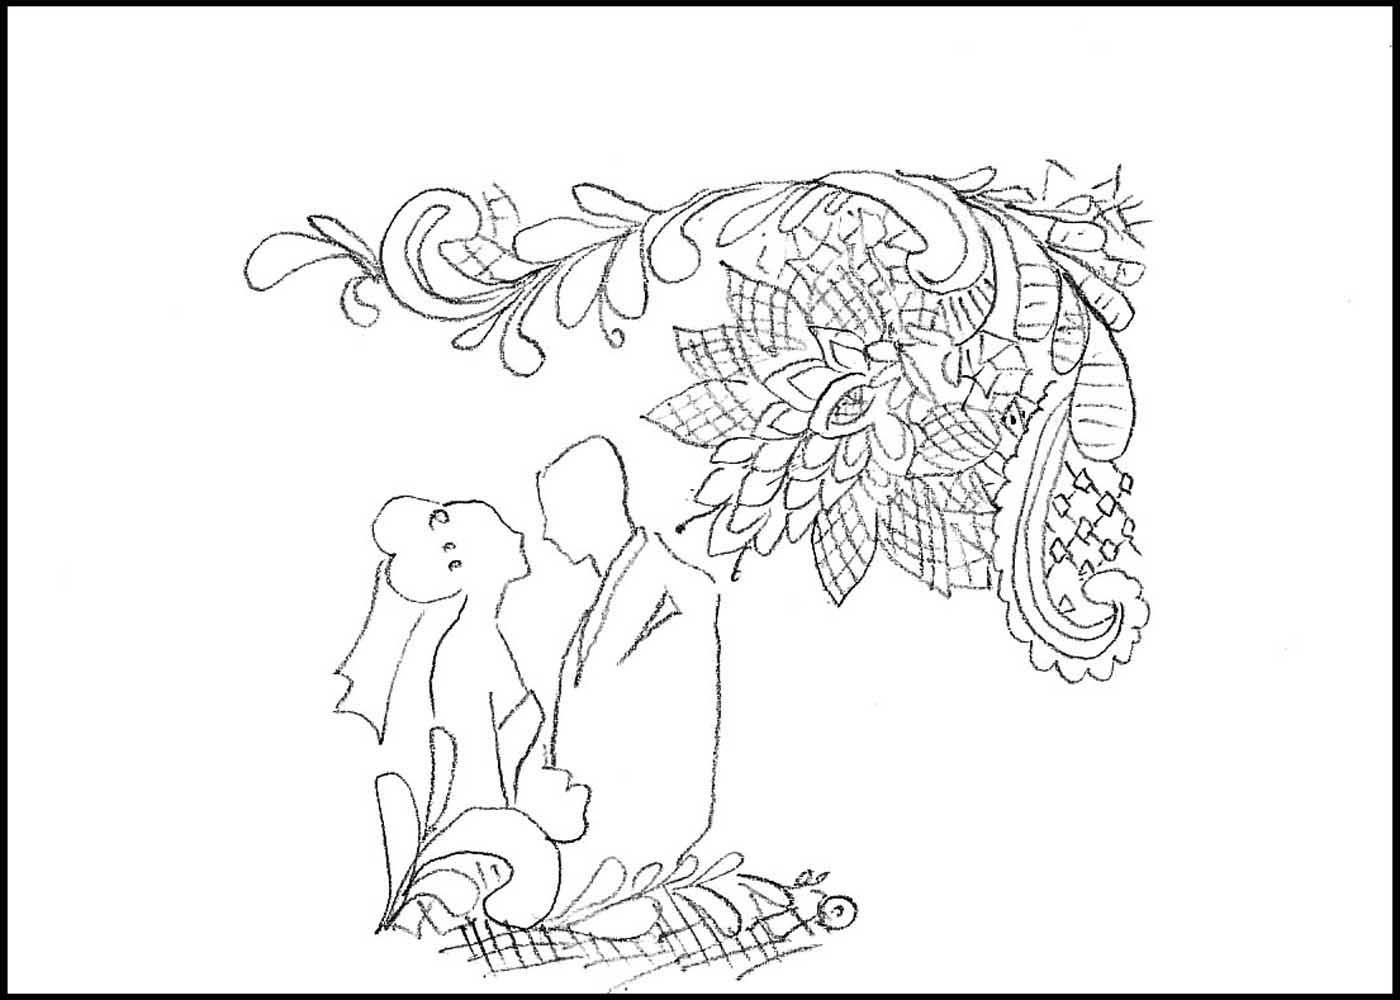 happy anniversary coloring pages - happy anniversary coloring pages coloring home